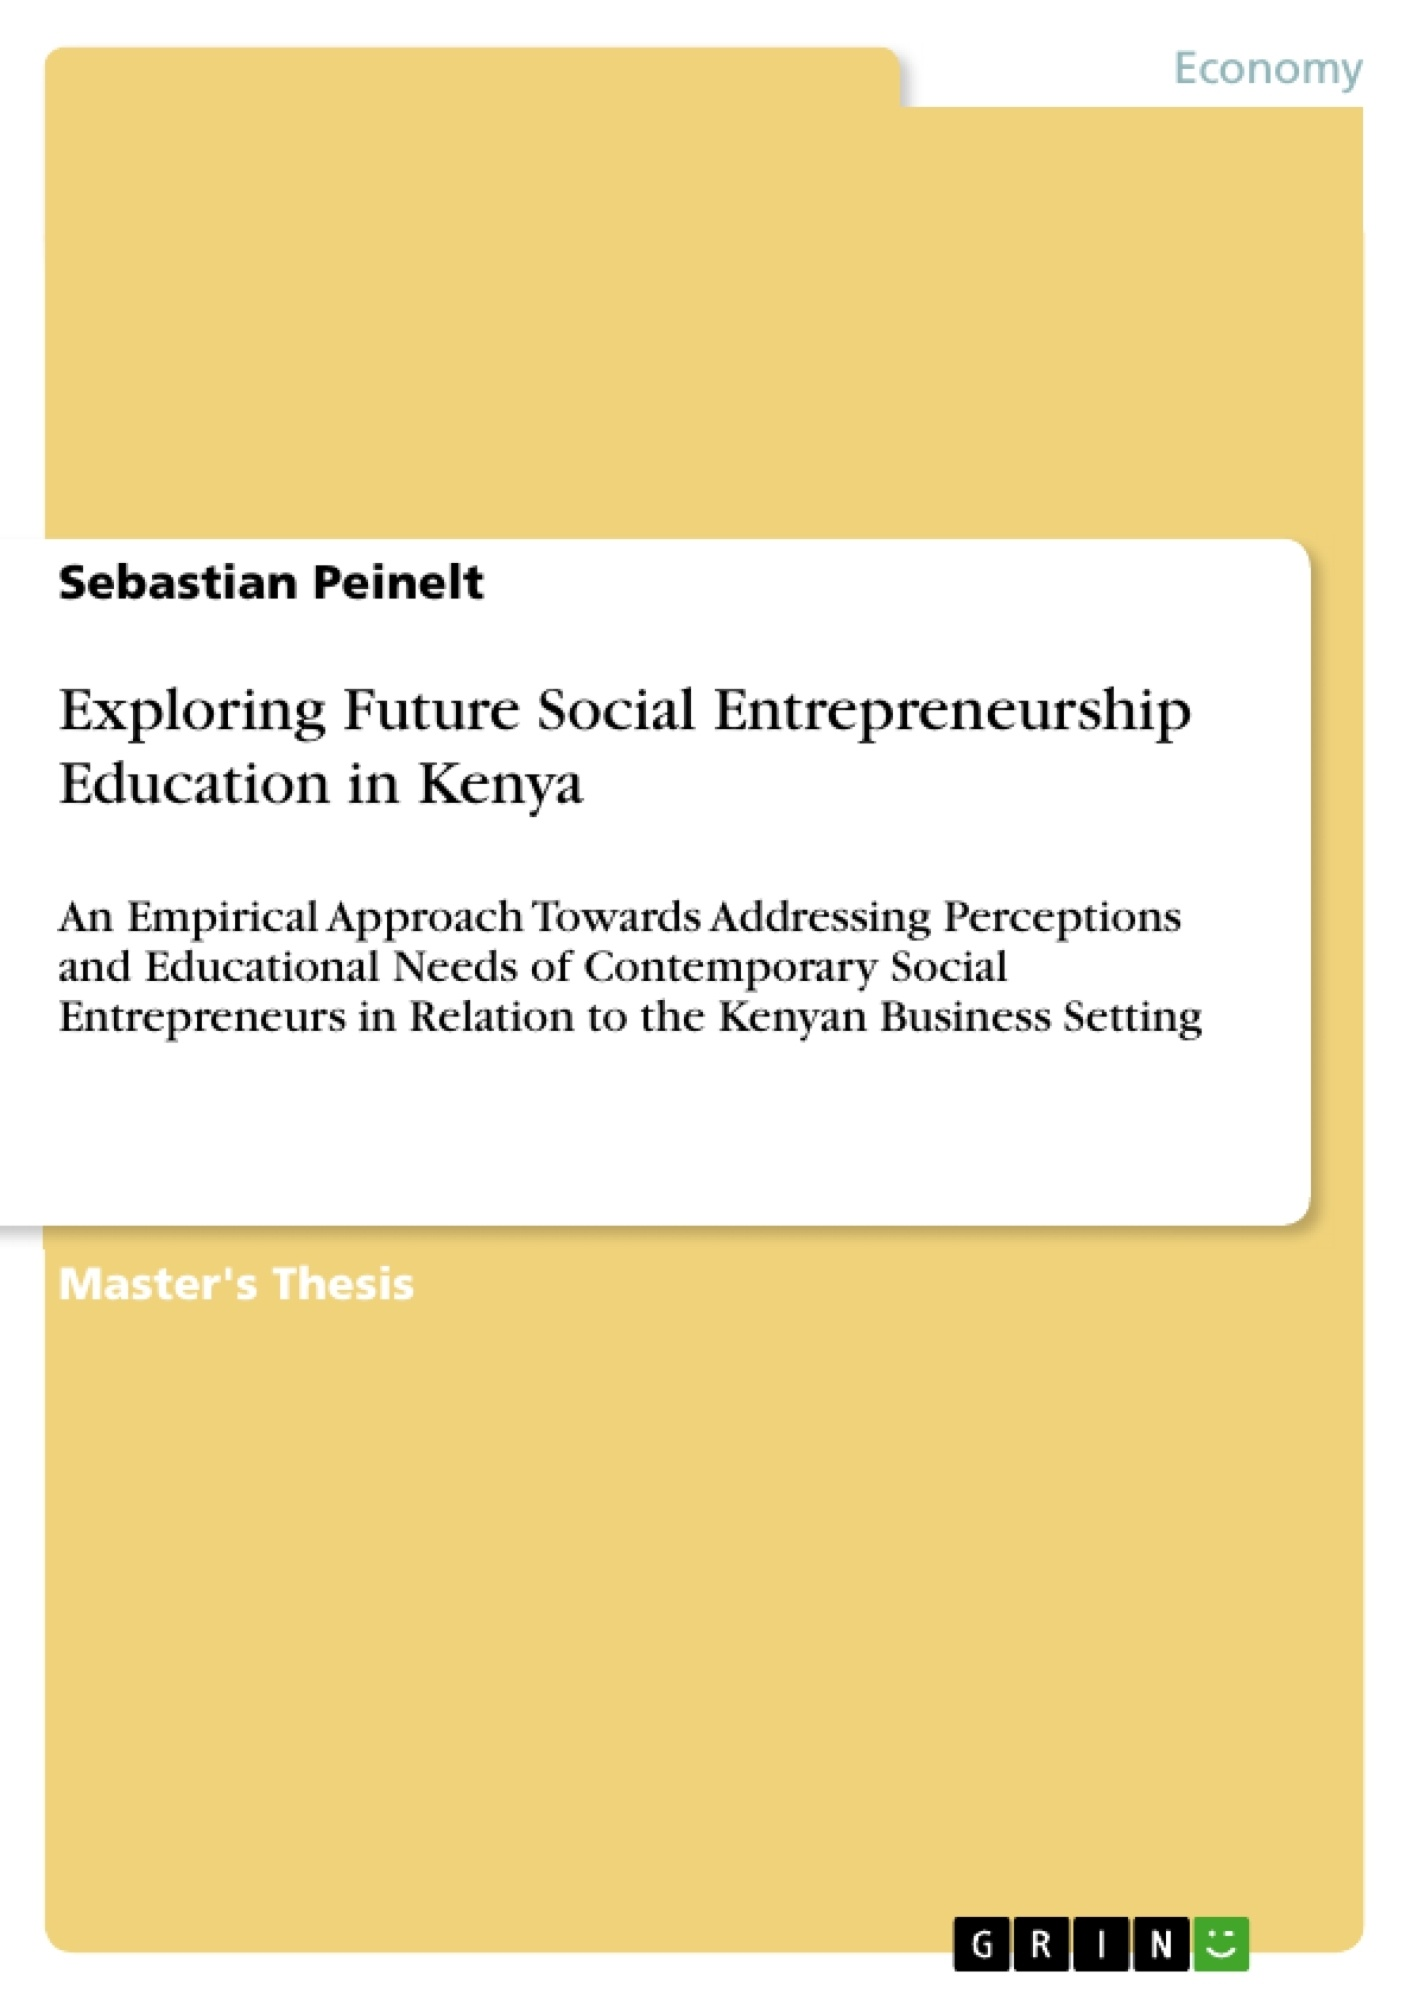 Title: Exploring Future Social Entrepreneurship Education in Kenya